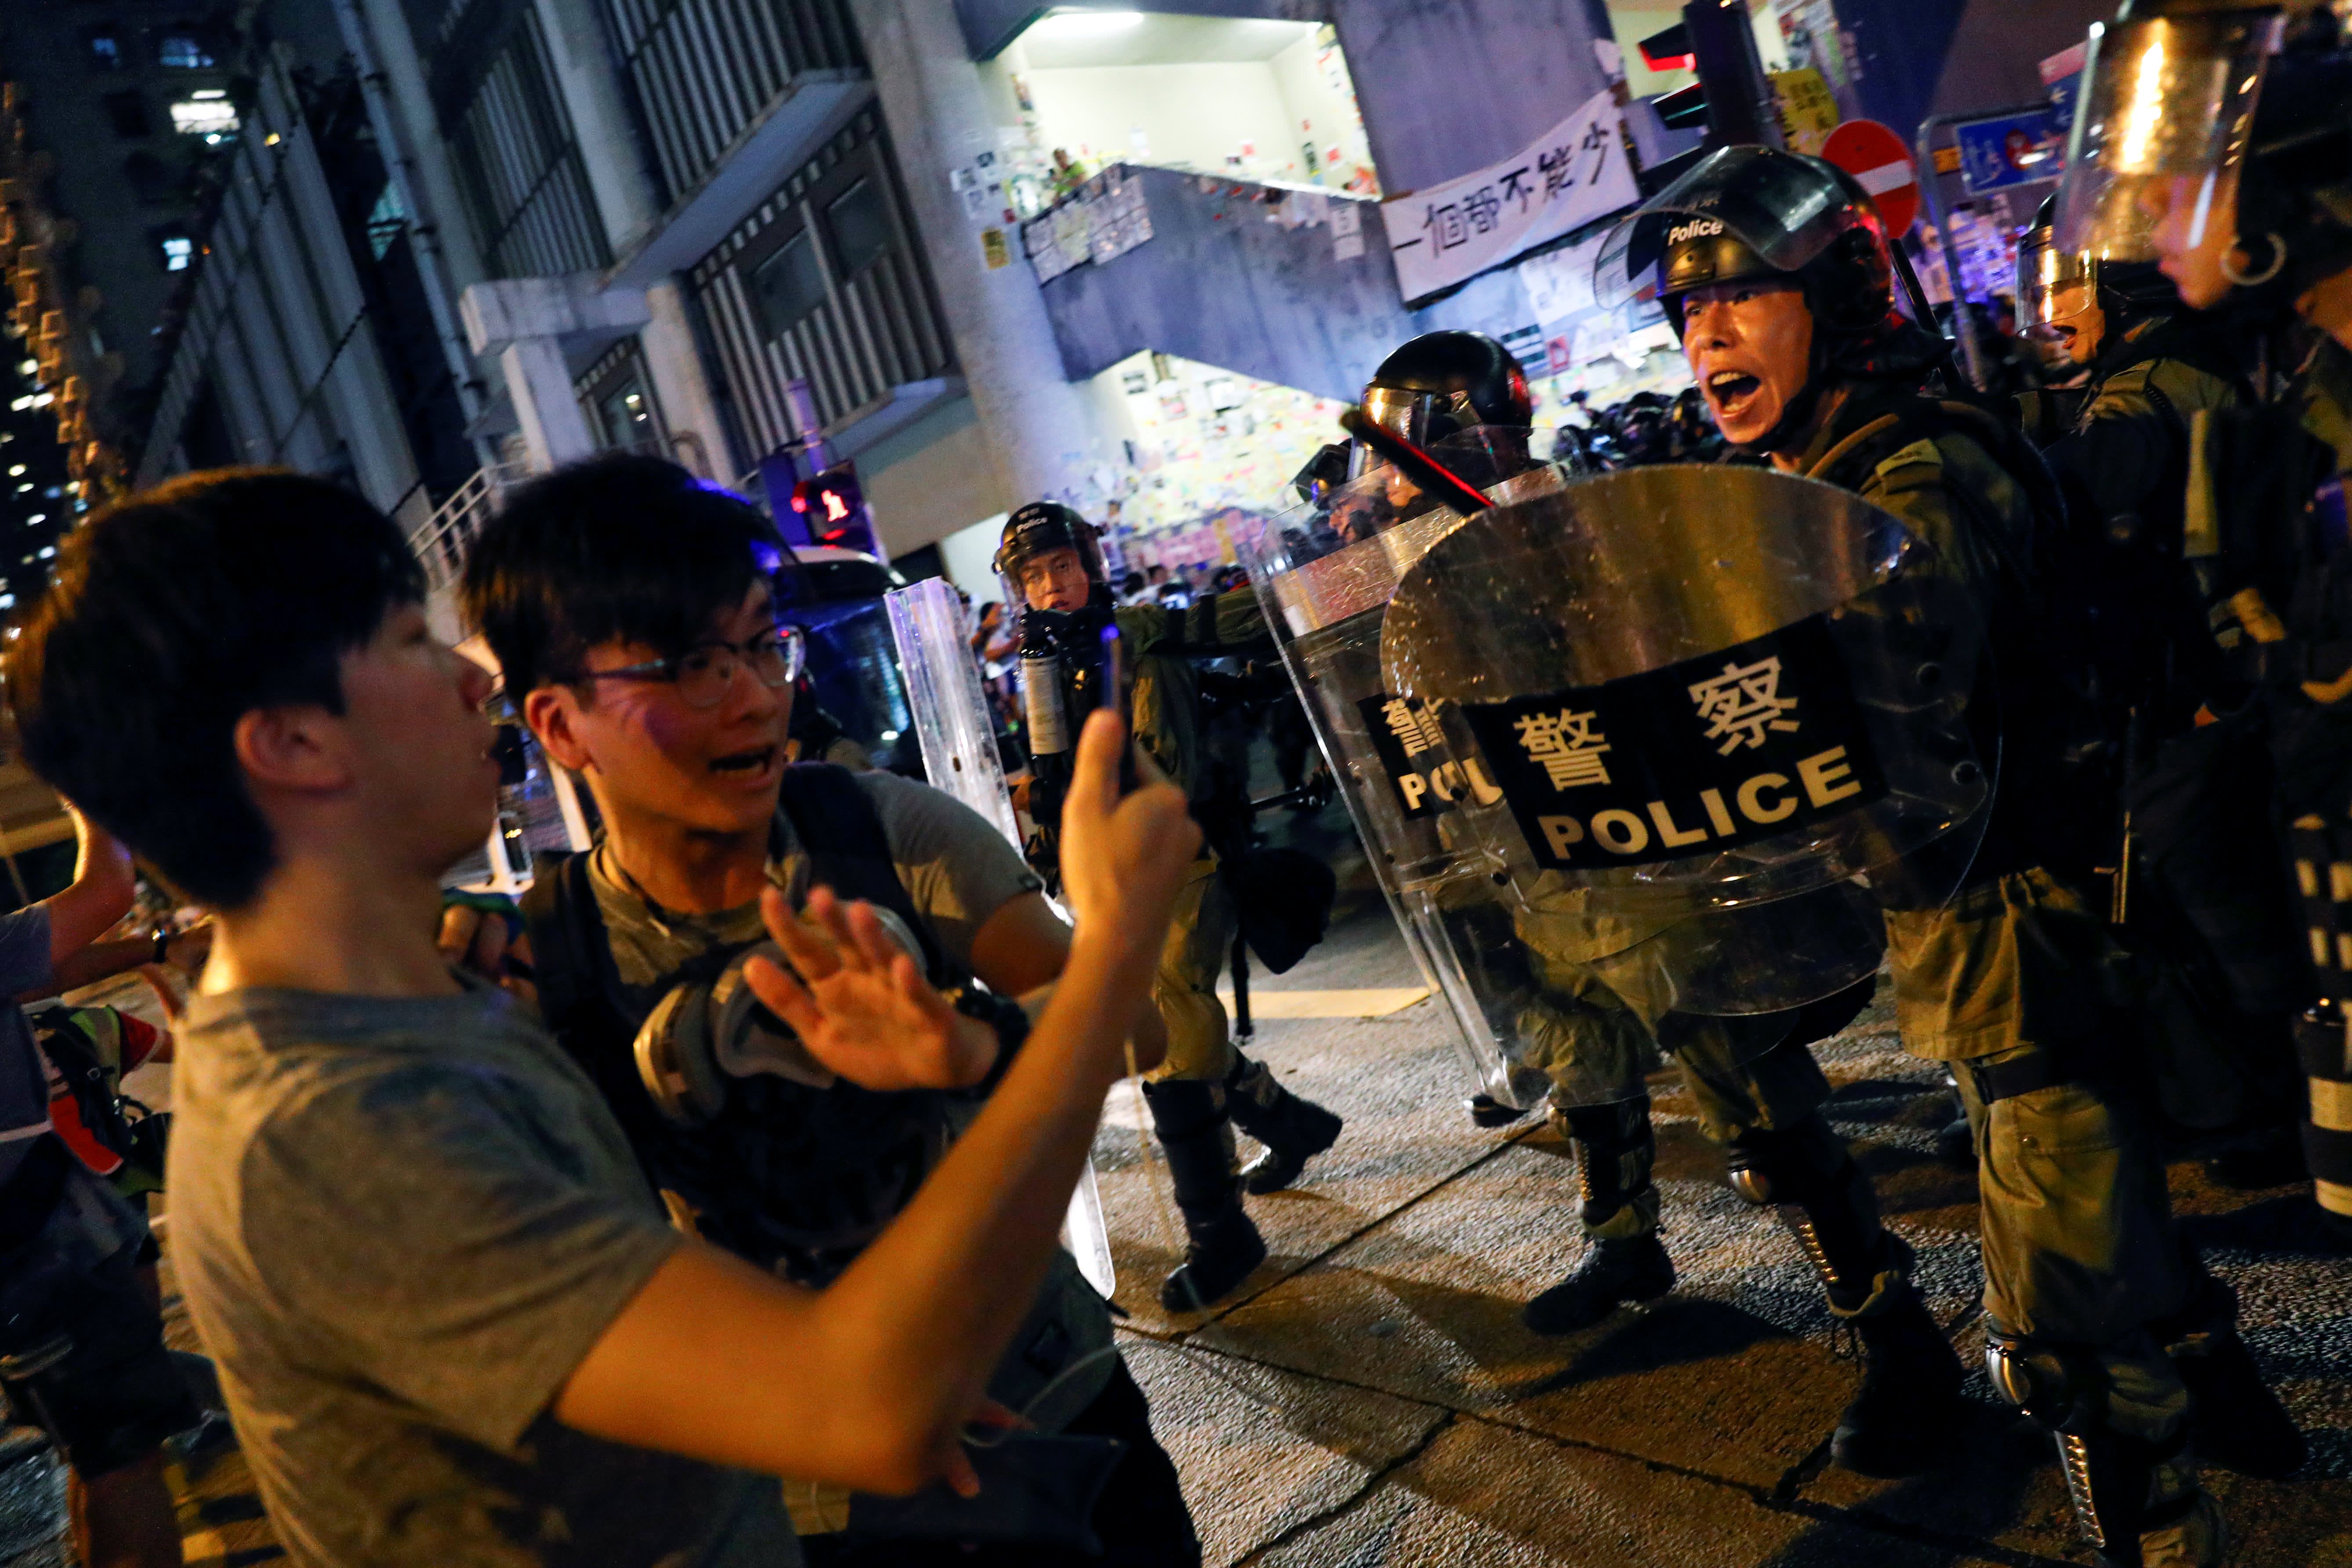 Protesters clash with police, chant 'liberate Hong Kong' as unrest continues for 10th week